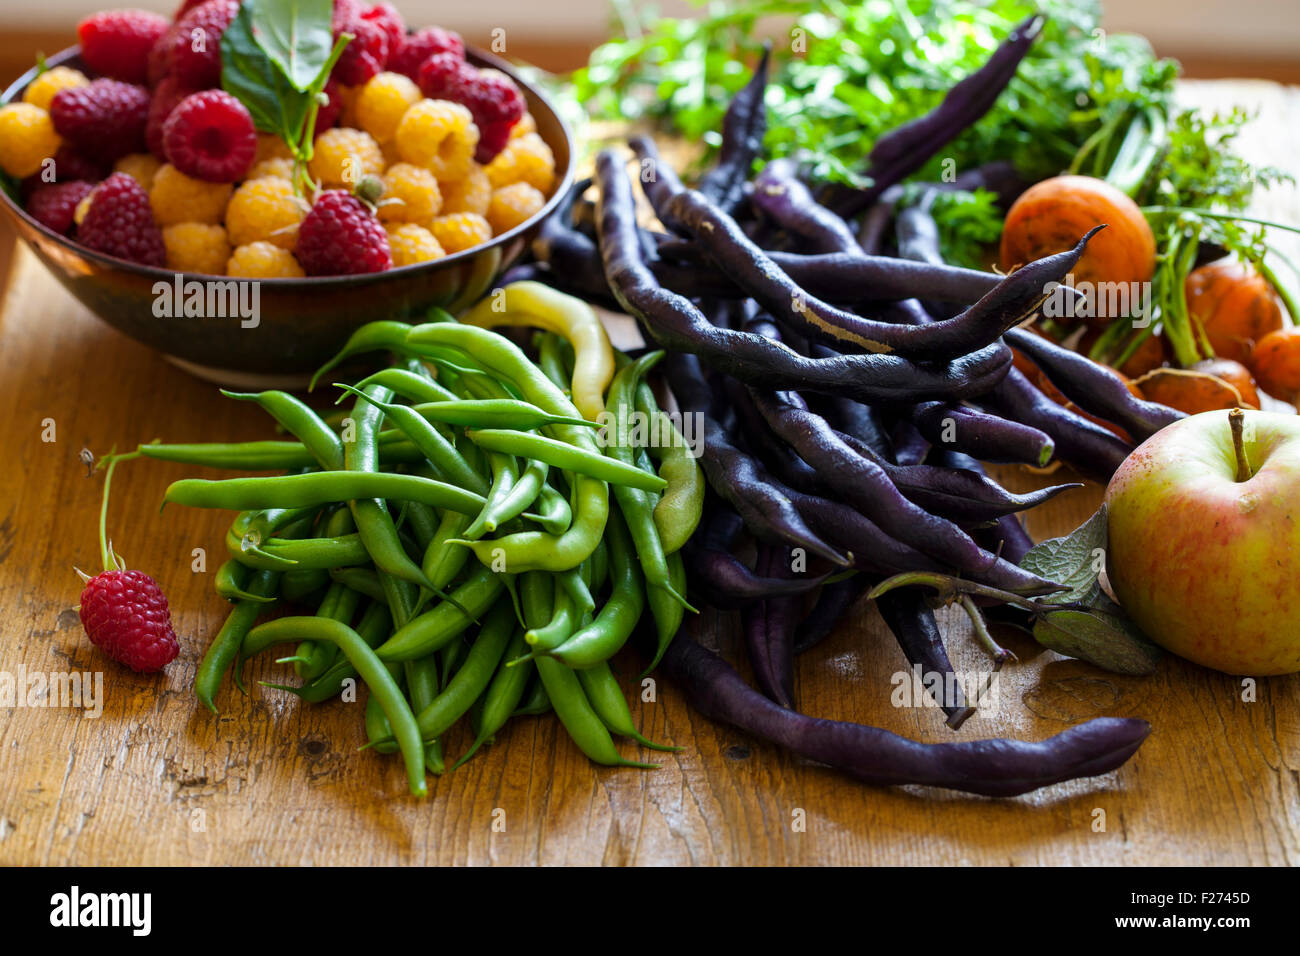 Selection of fruit an vegetable - Stock Image